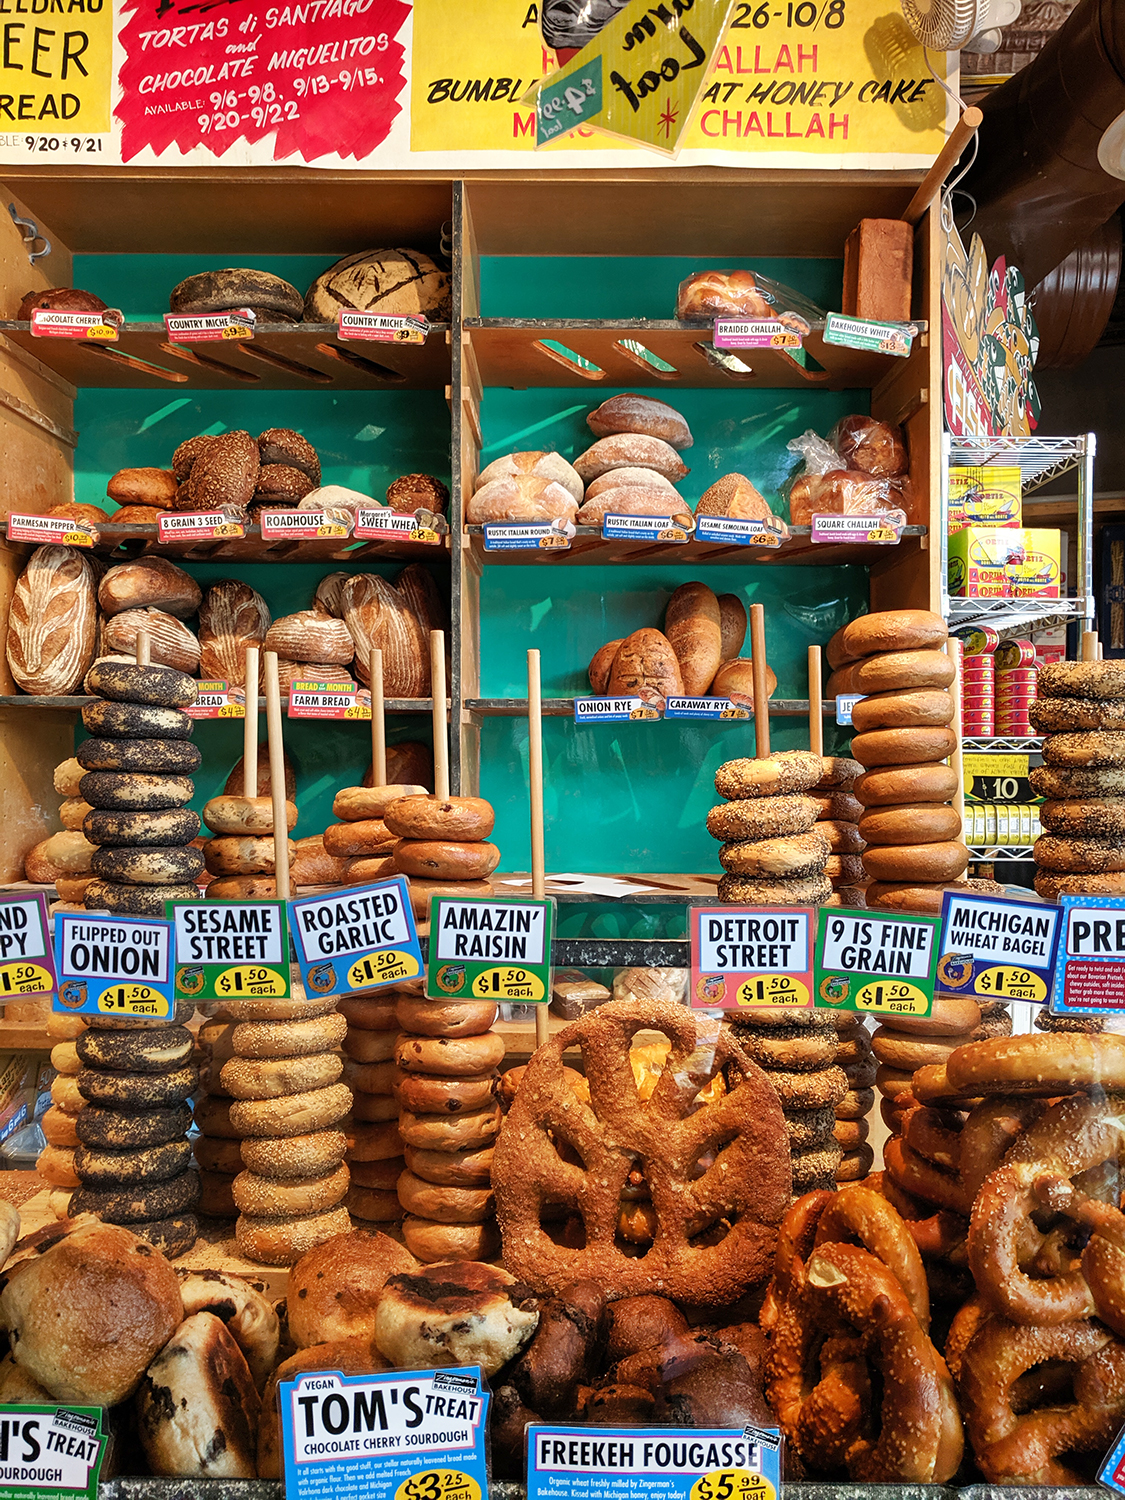 15michigan-annarbor-zingermans-deli-bagel-bread-food-travel